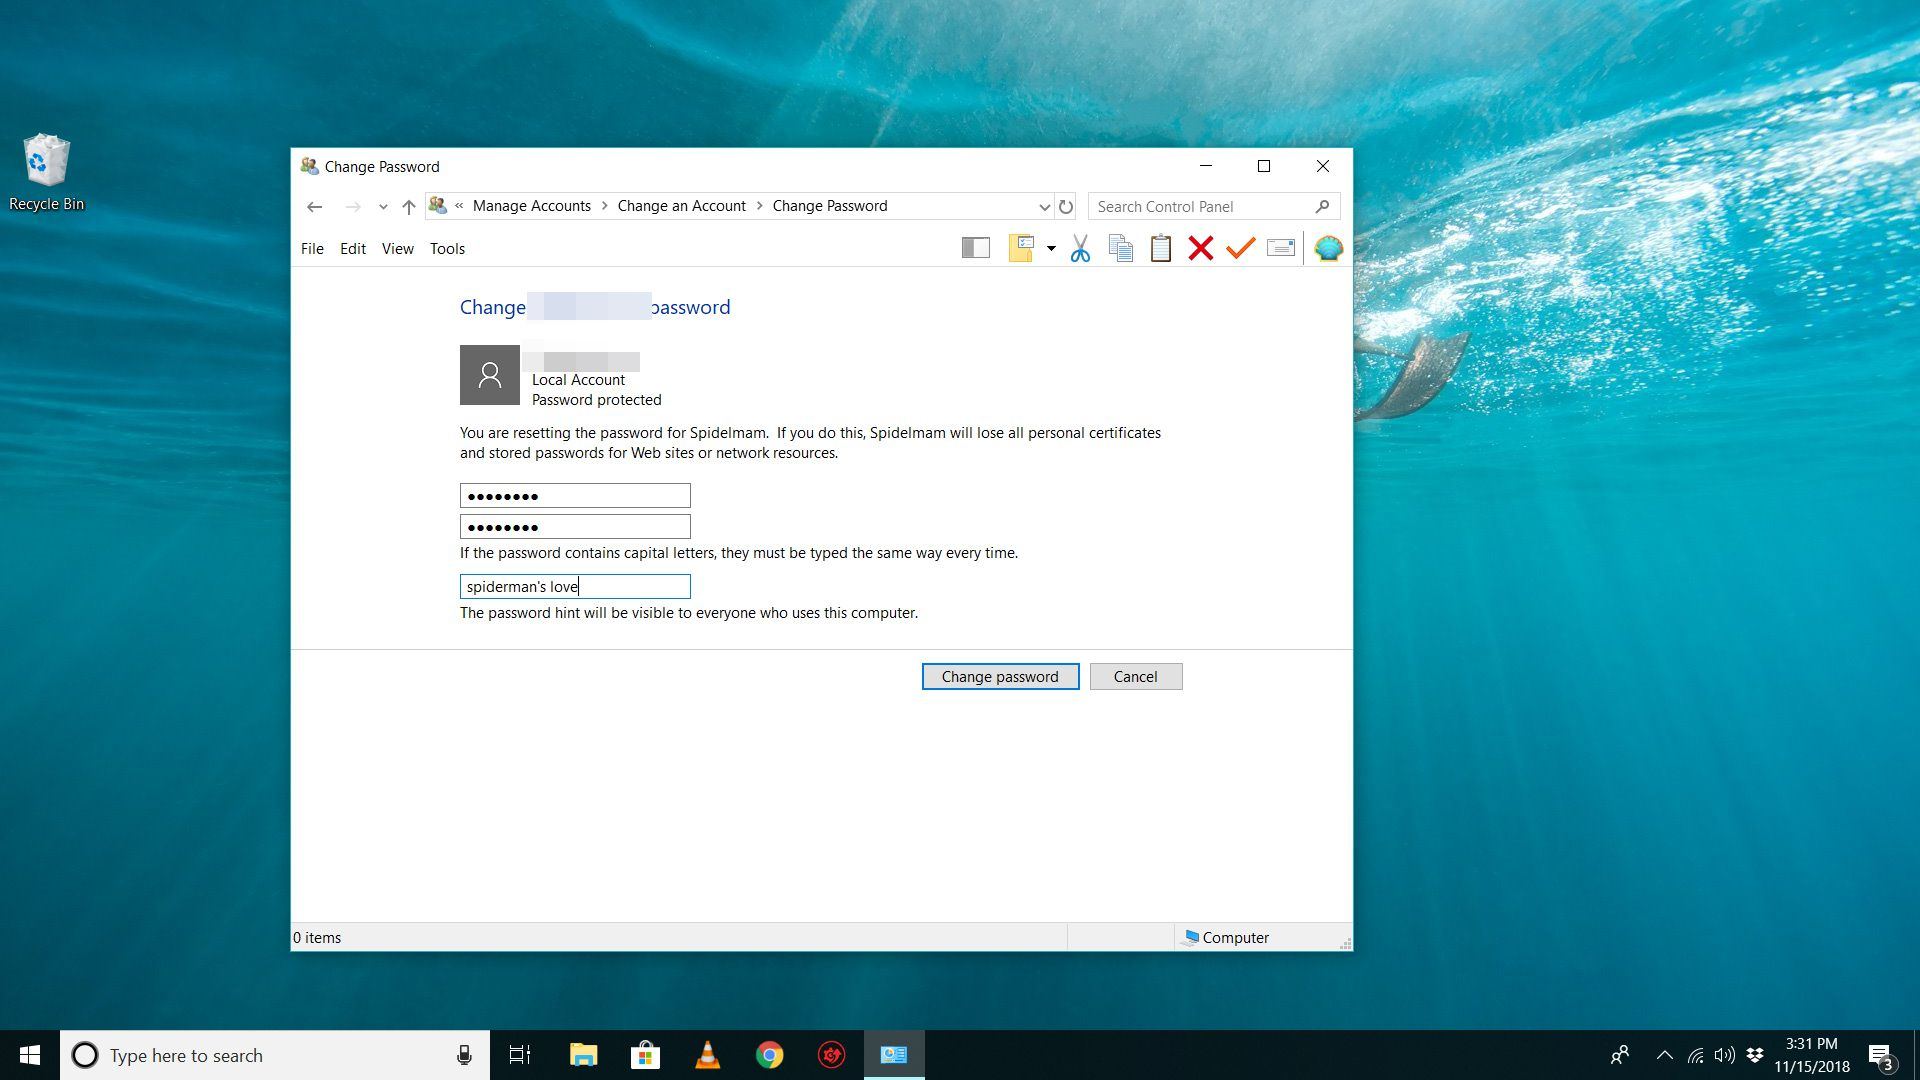 How Do I Change Another User's Password in Windows?